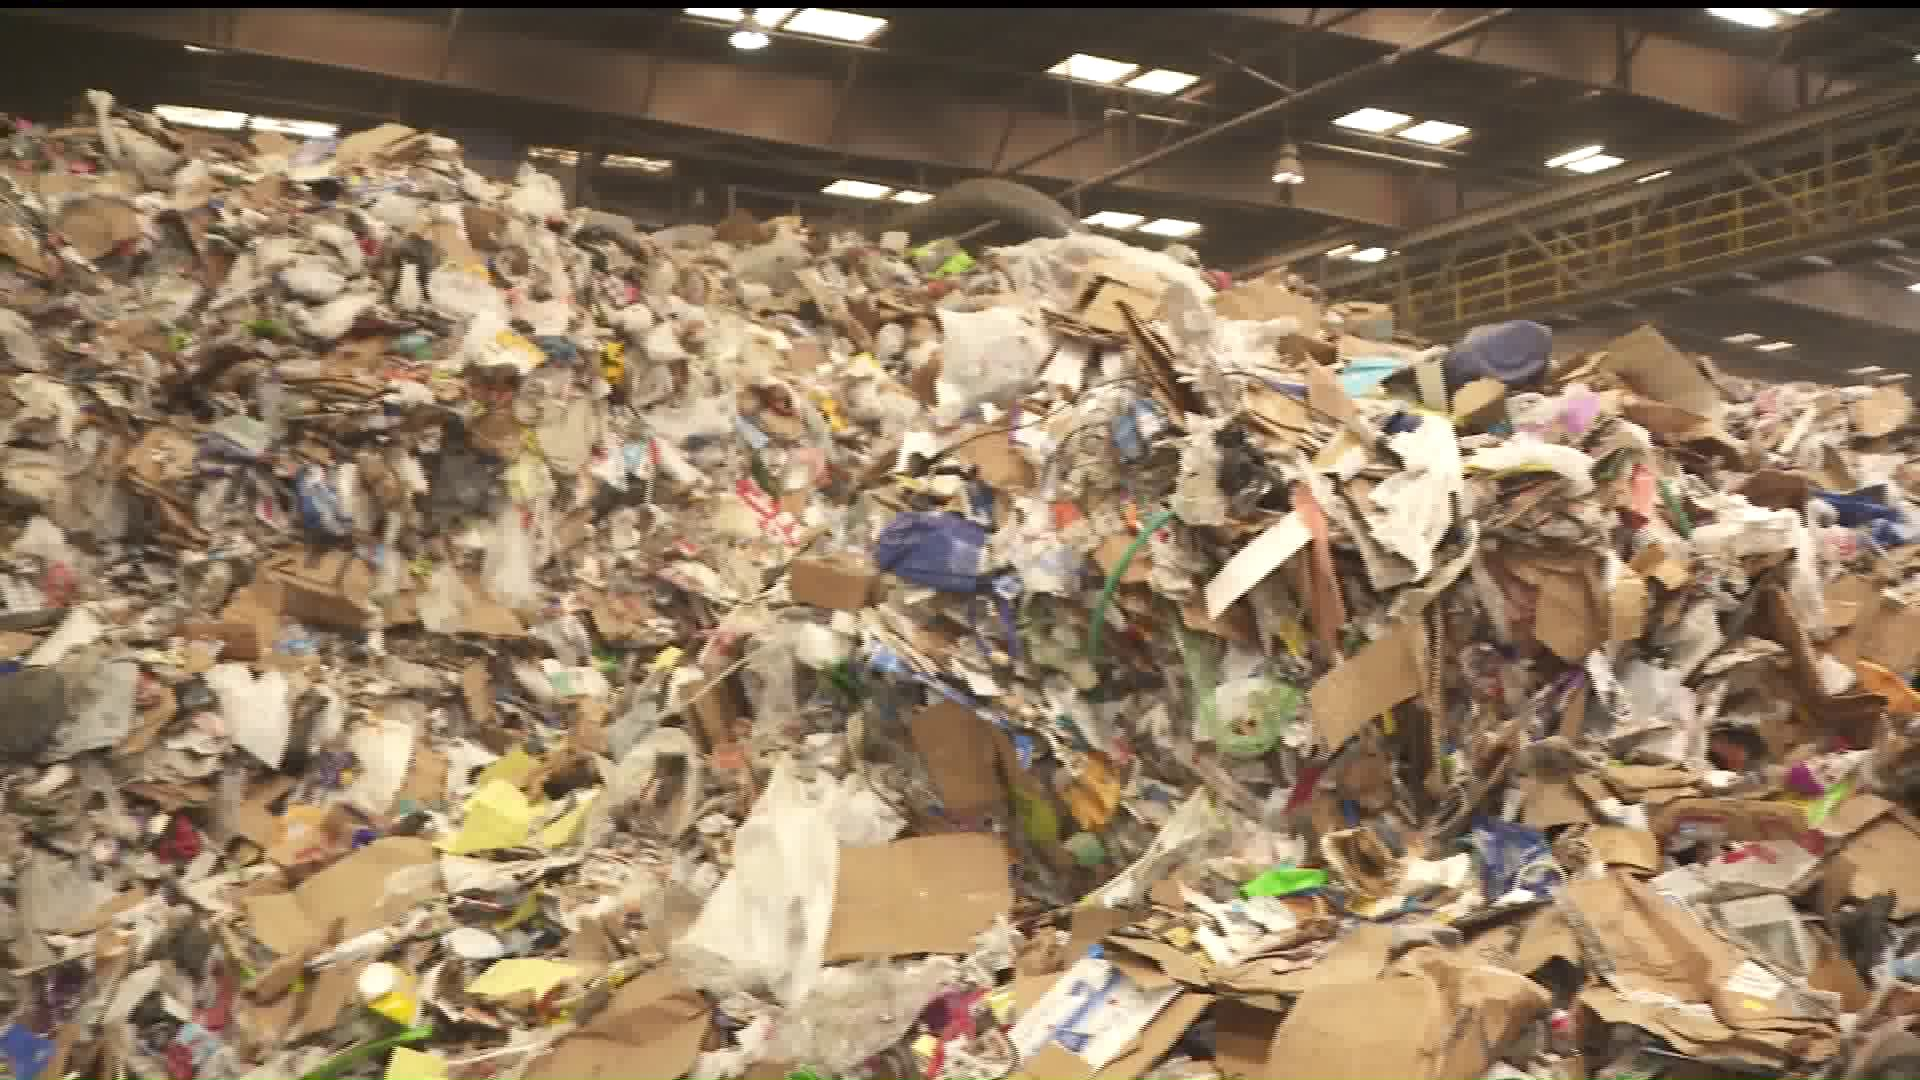 Trash awaits sorting for recycling at Republic Services in Anaheim on Nov. 21, 2019. (Credit: KTLA)